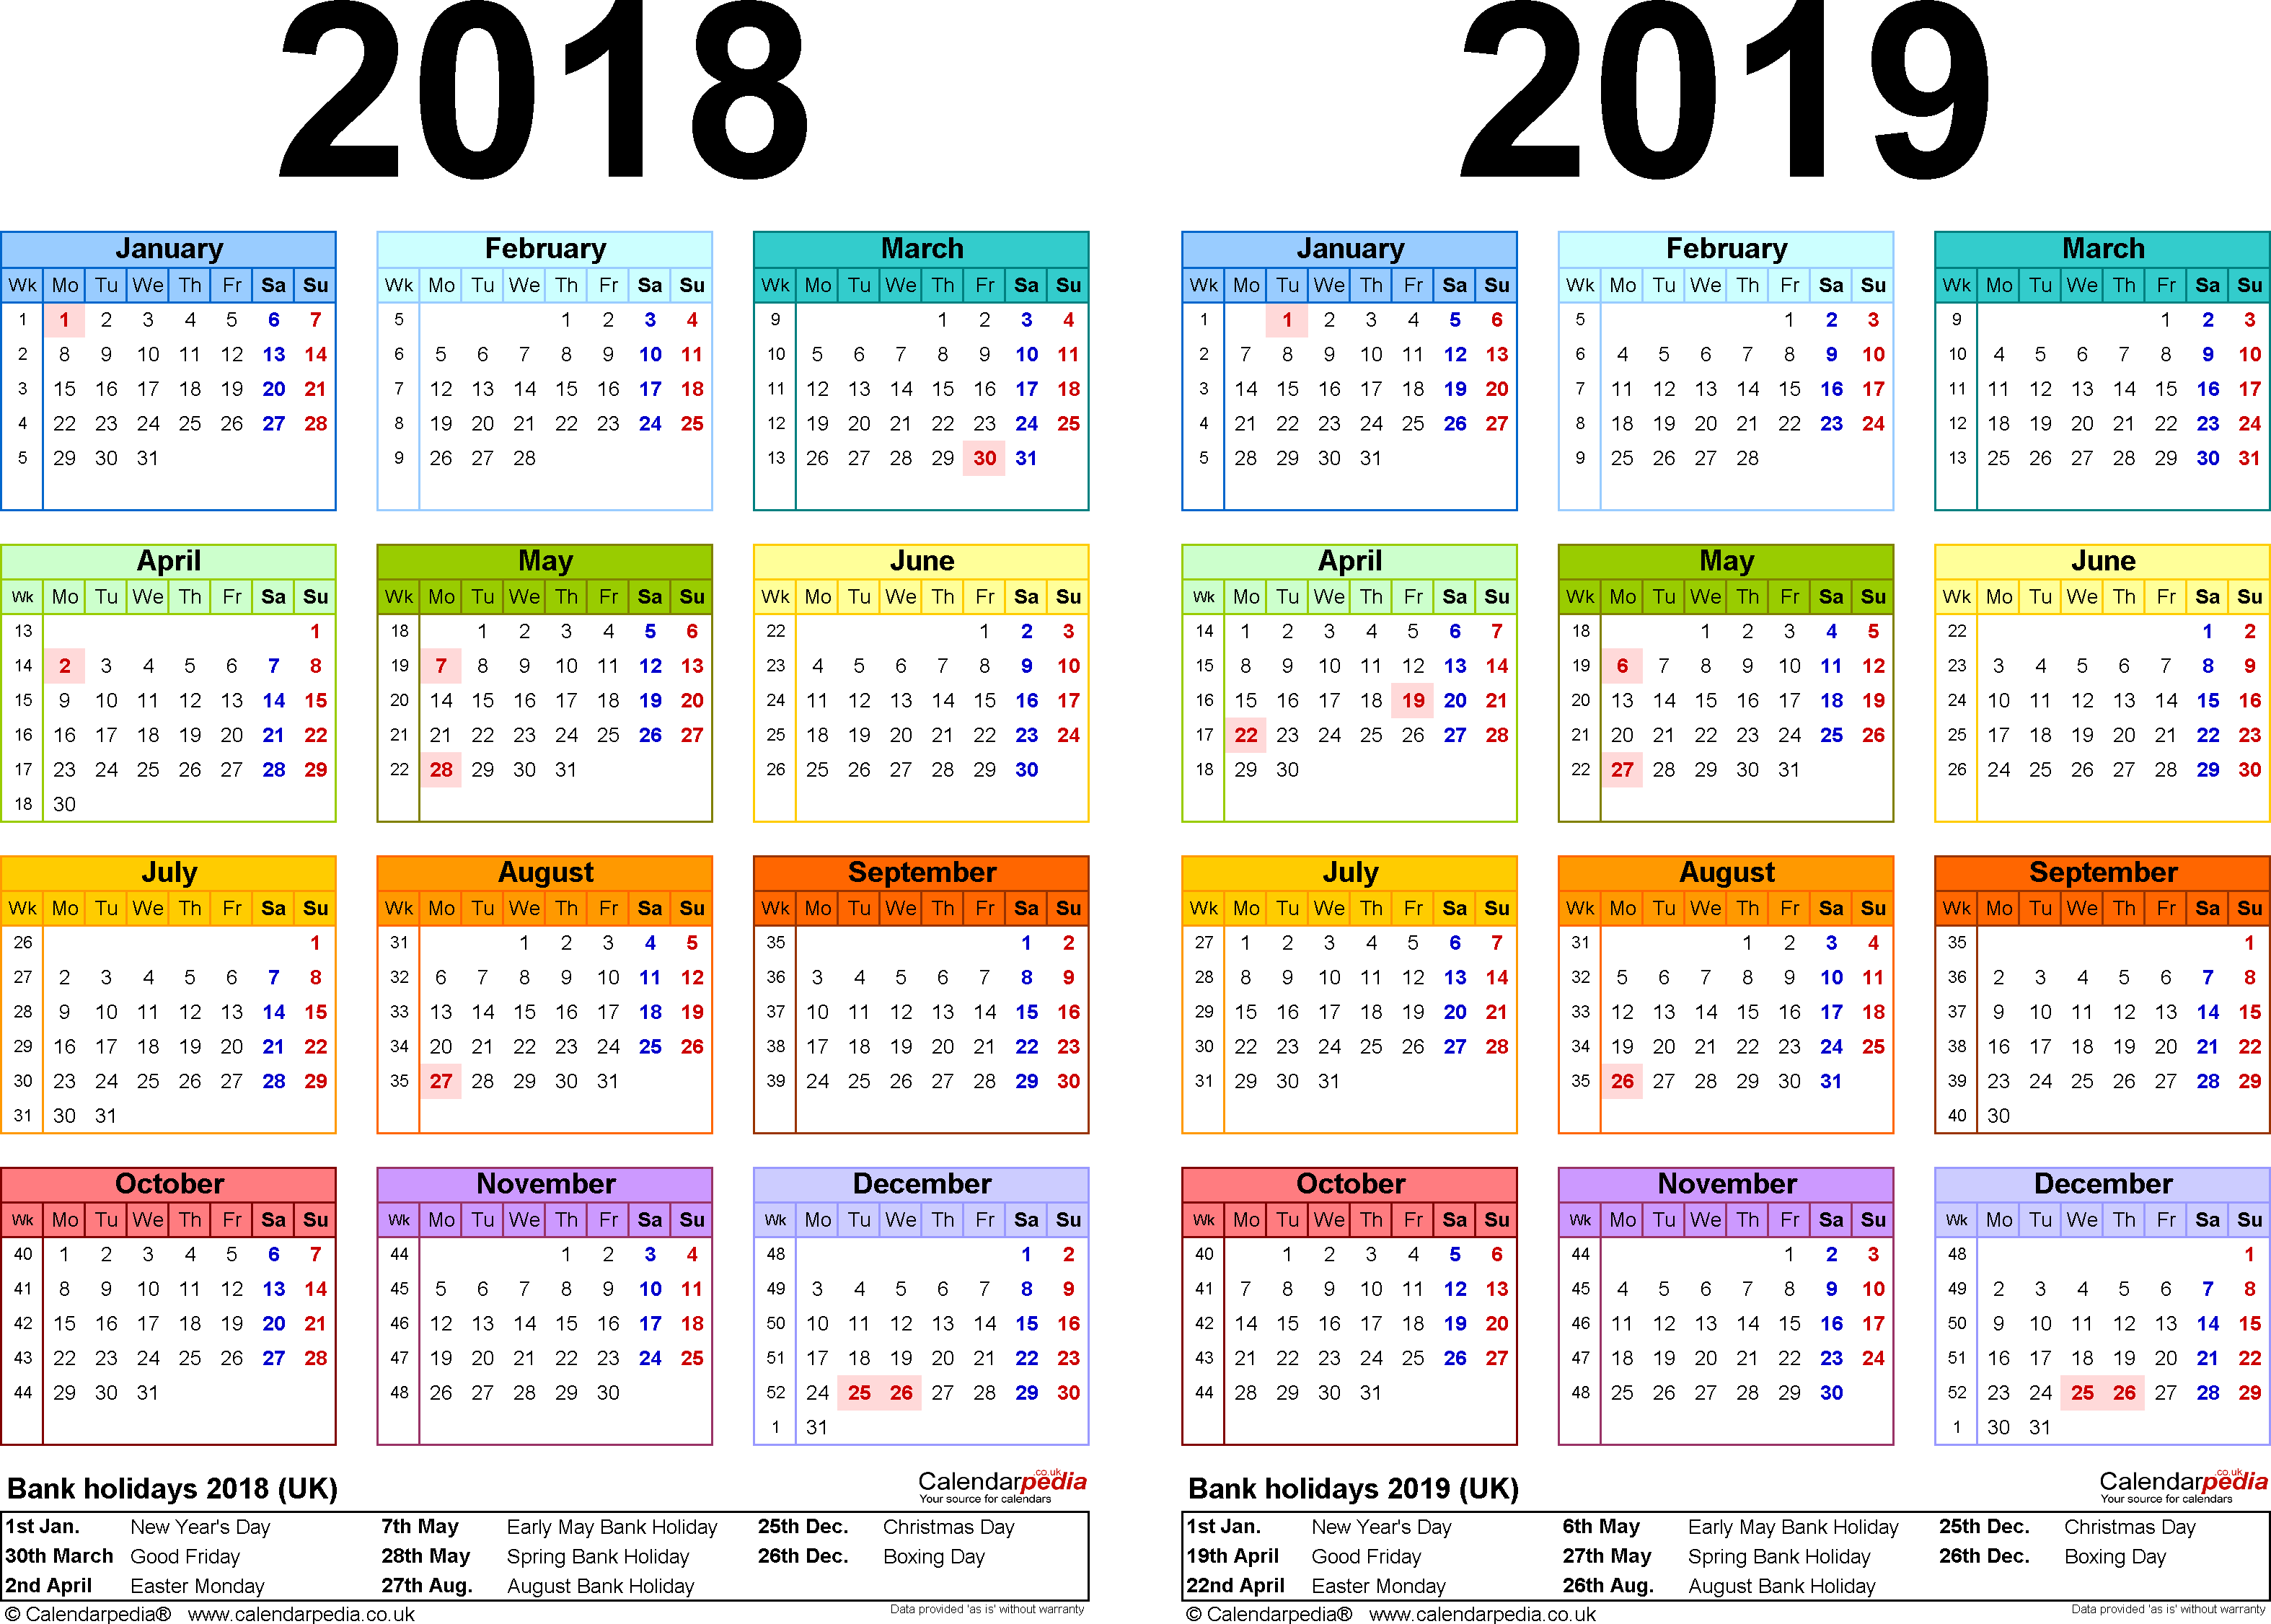 Download Template 2: Excel template for two year calendar 2018/2019 in colour (landscape orientation, 1 page, A4)